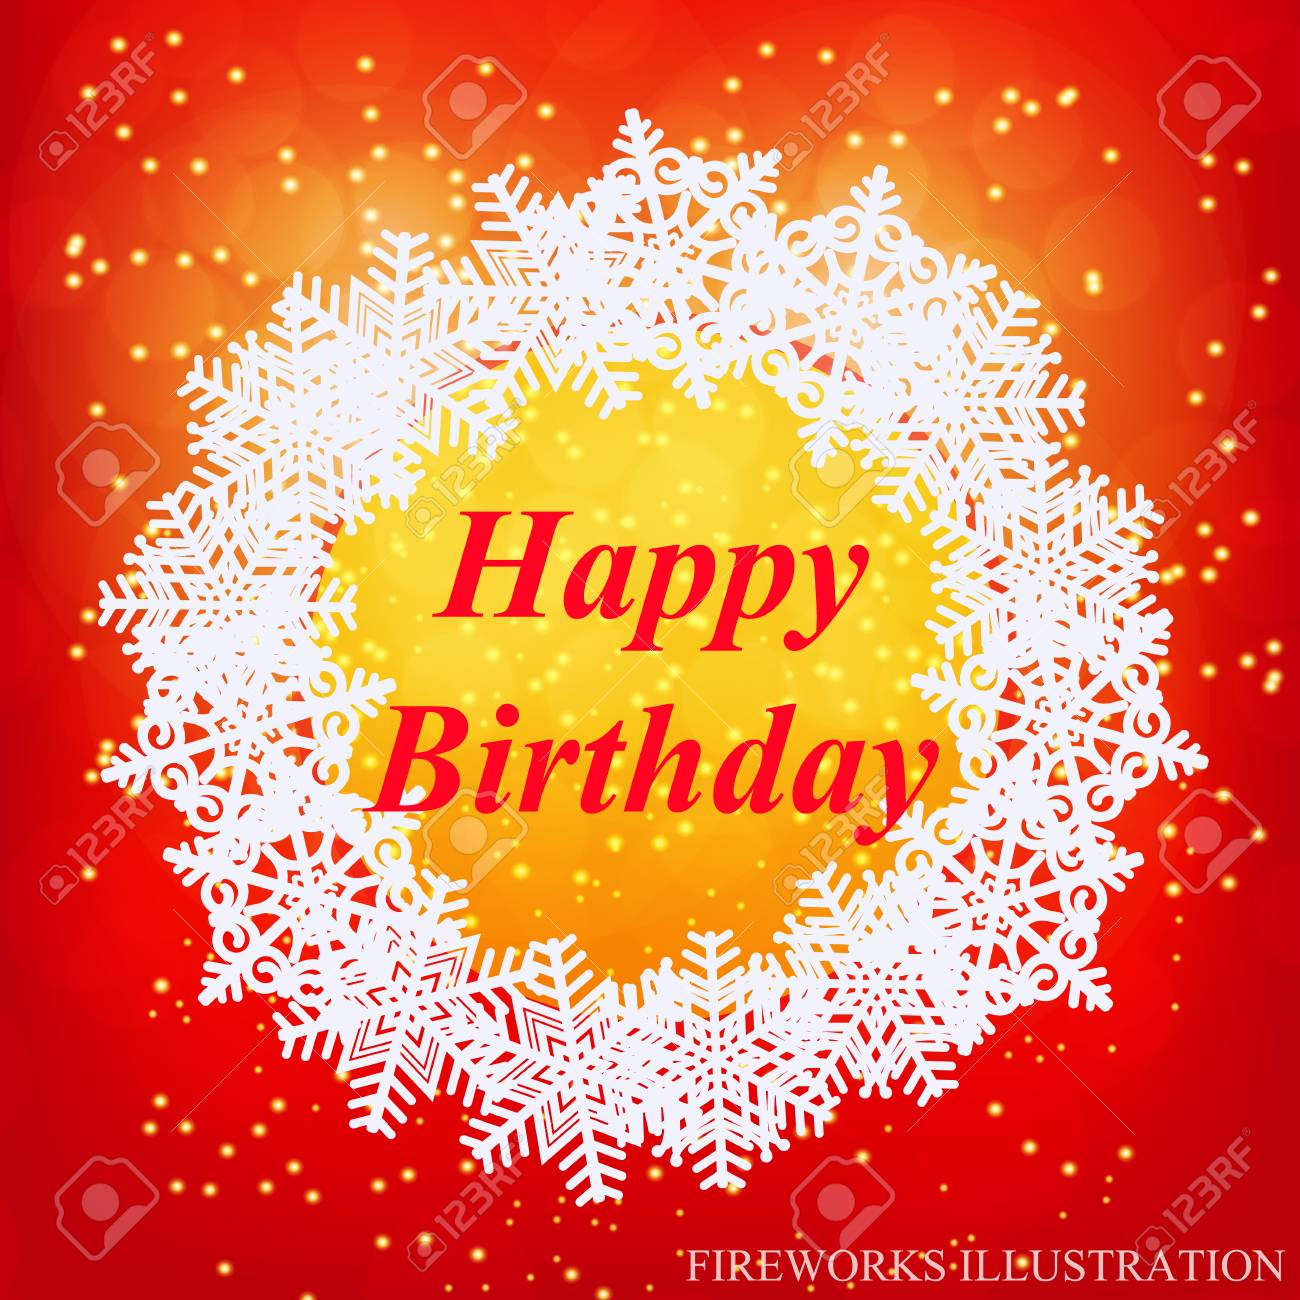 Happy Birthday Greeting Card New Year Template Brightly Colorful Royalty Free Cliparts Vectors And Stock Illustration Image 92406418